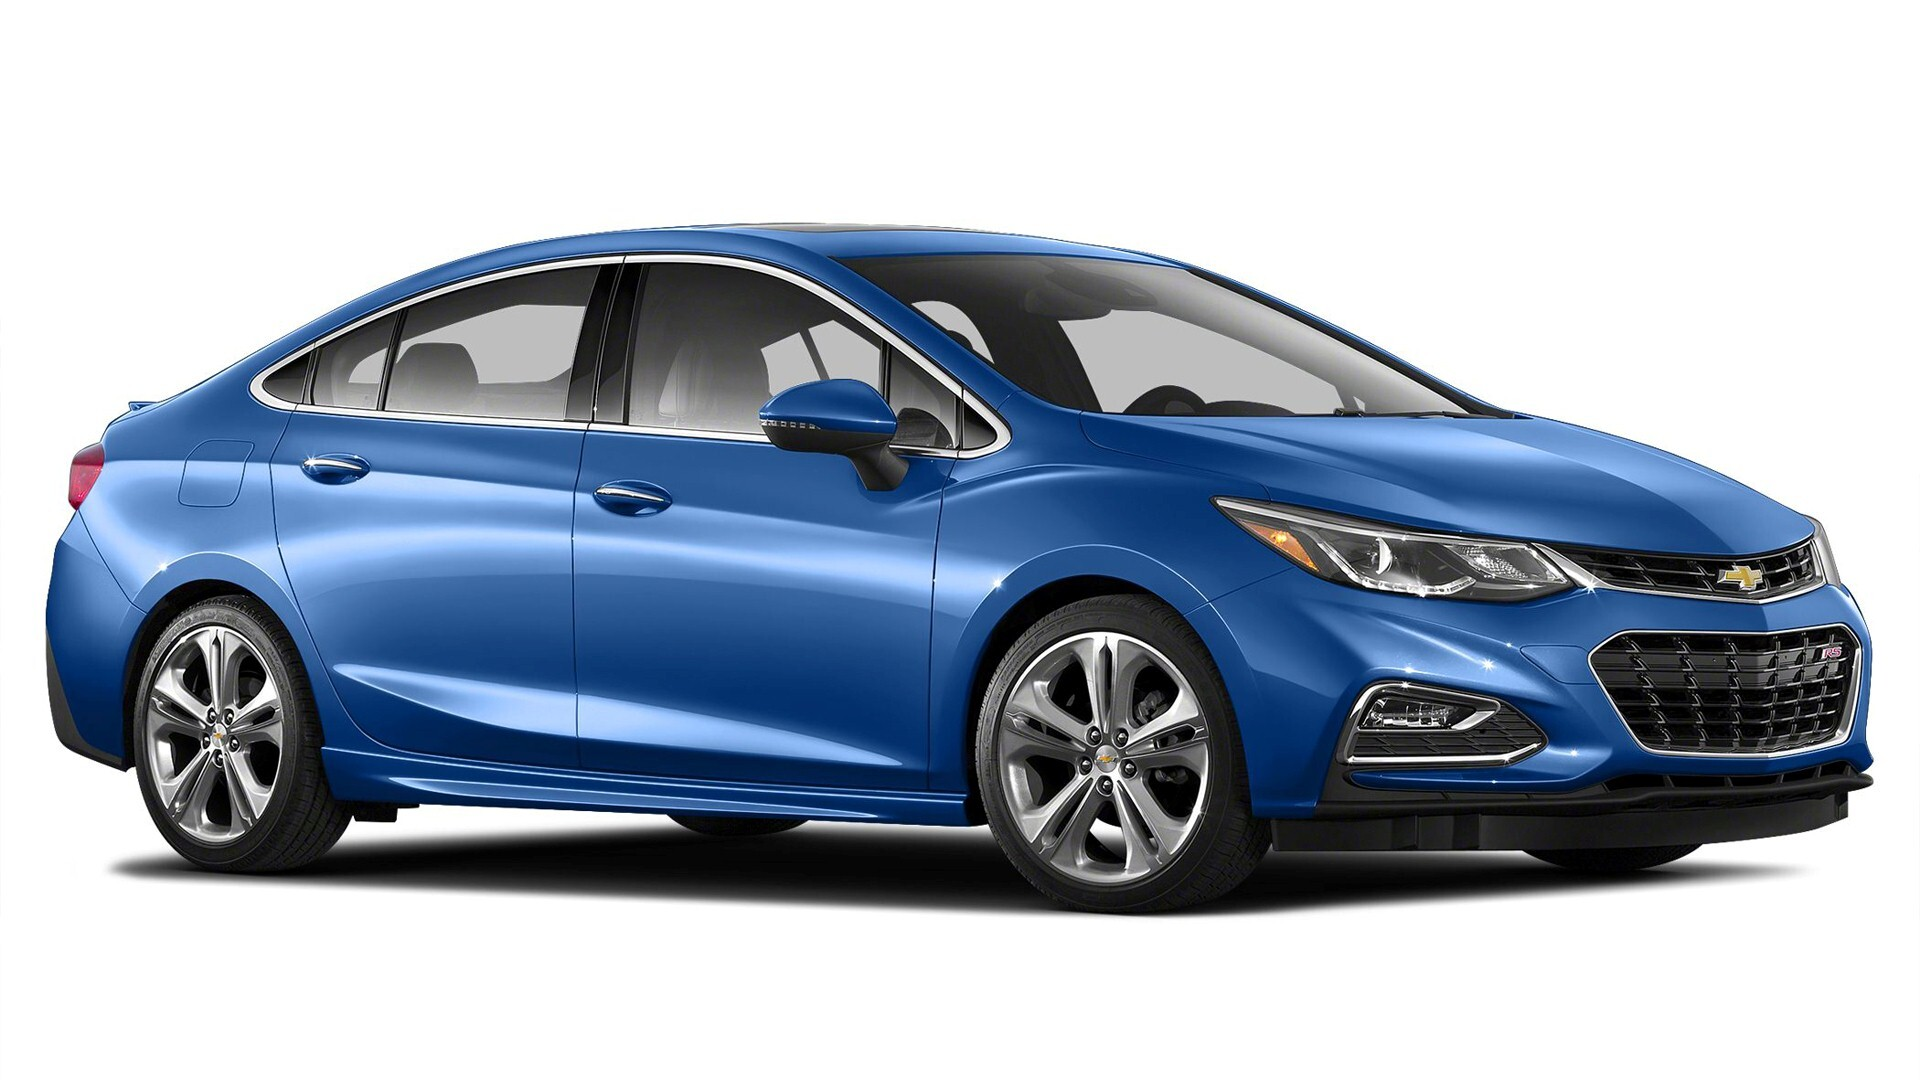 Chevrolet Cruze Sedan L Car Hd Pics Hd Wallpapers